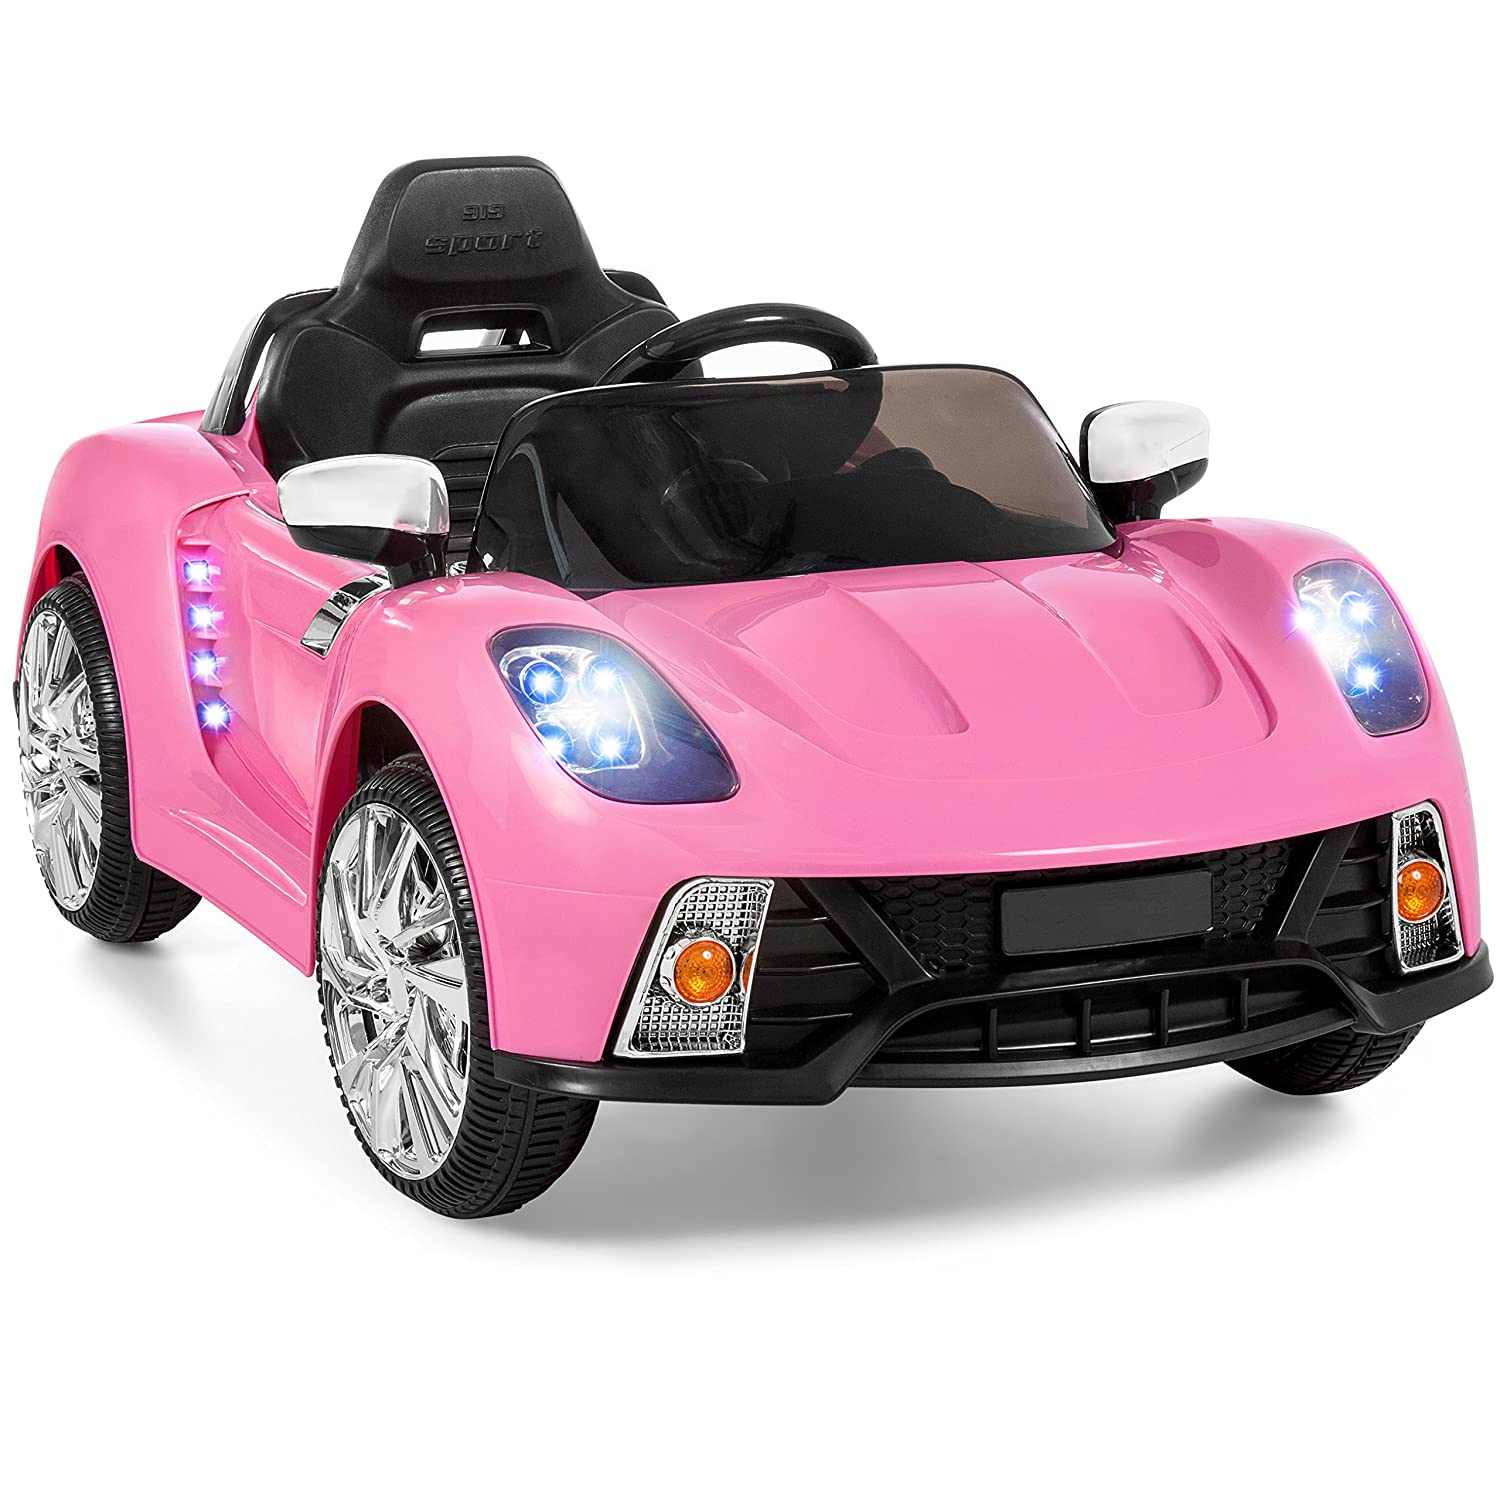 Girls' Remote Control Power Wheel Car